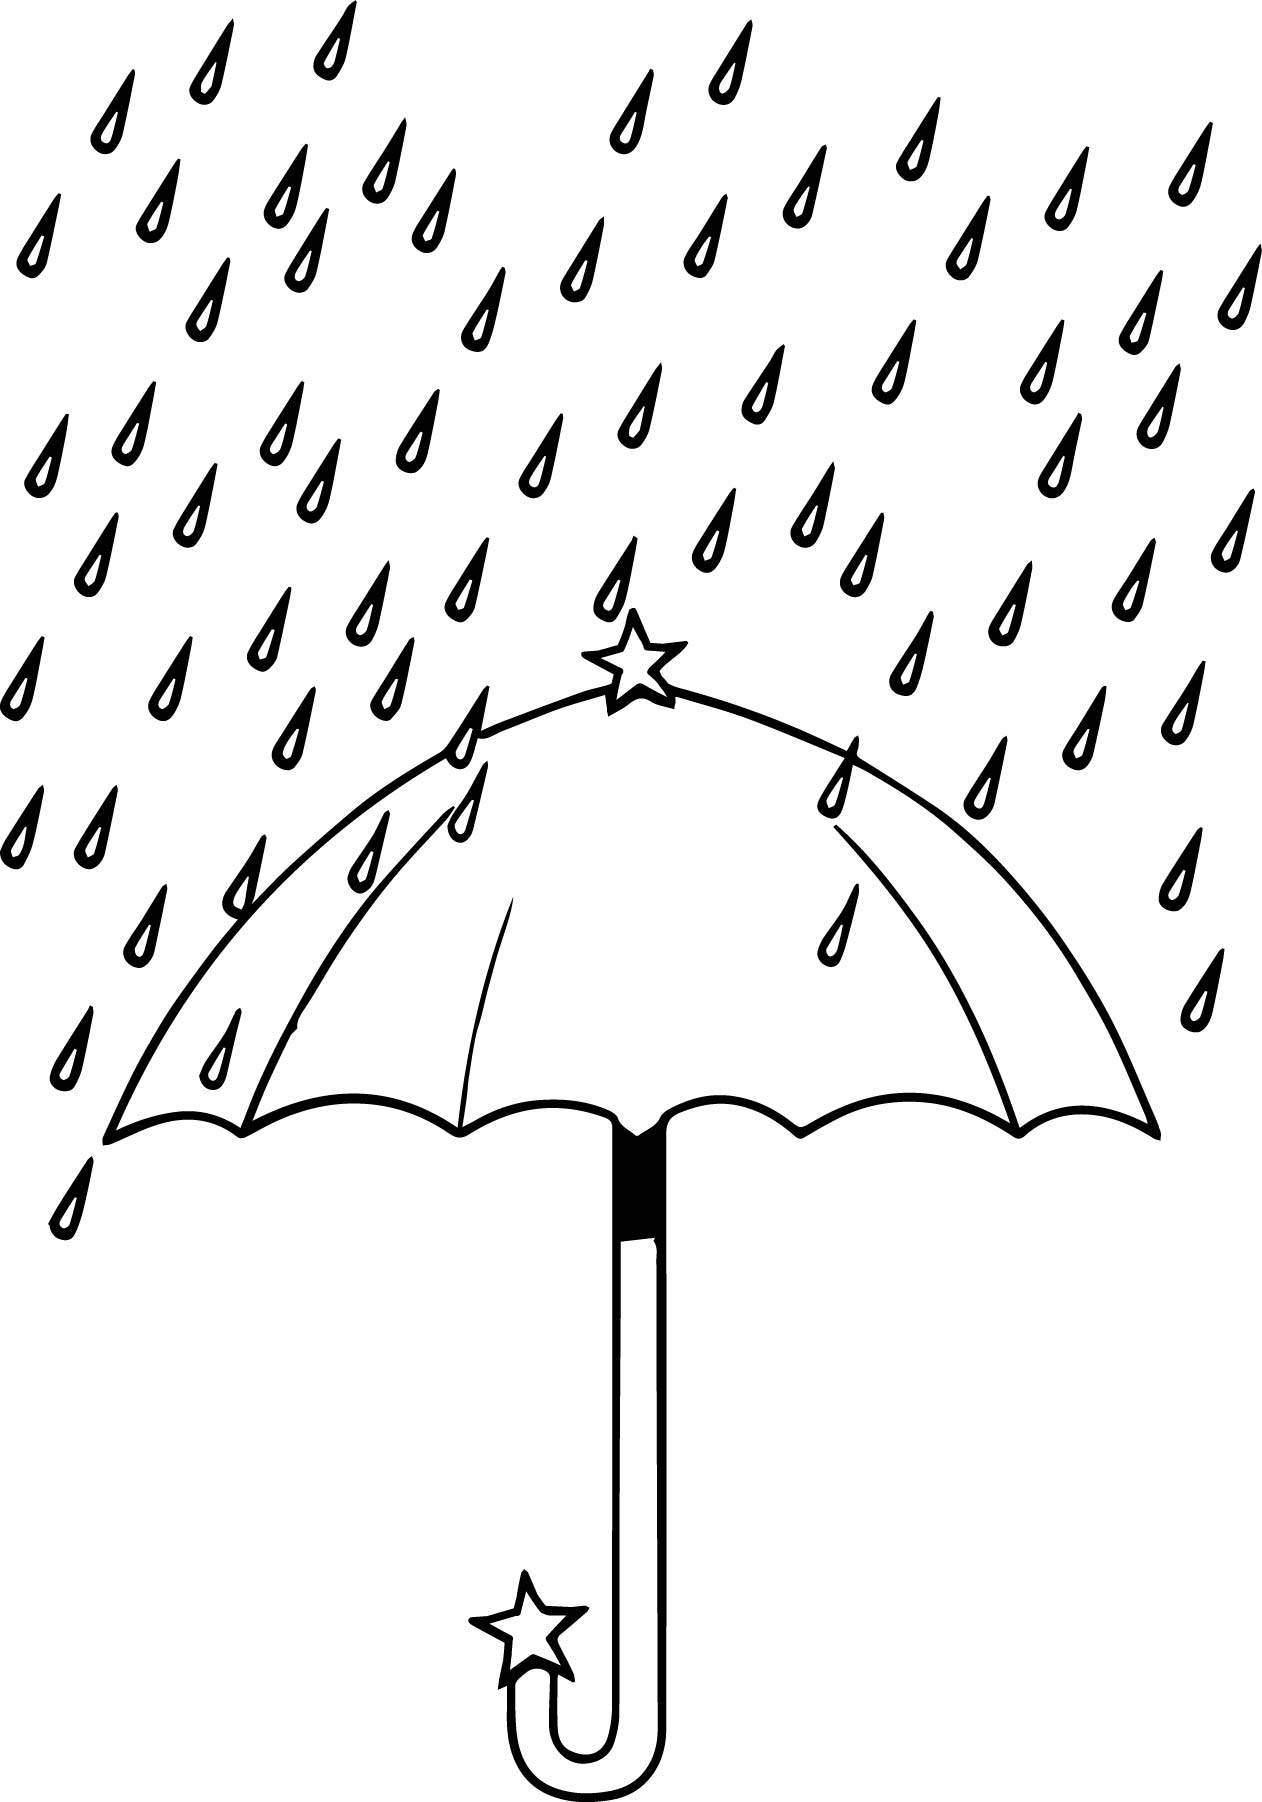 april umbrella rain coloring page wecoloringpage